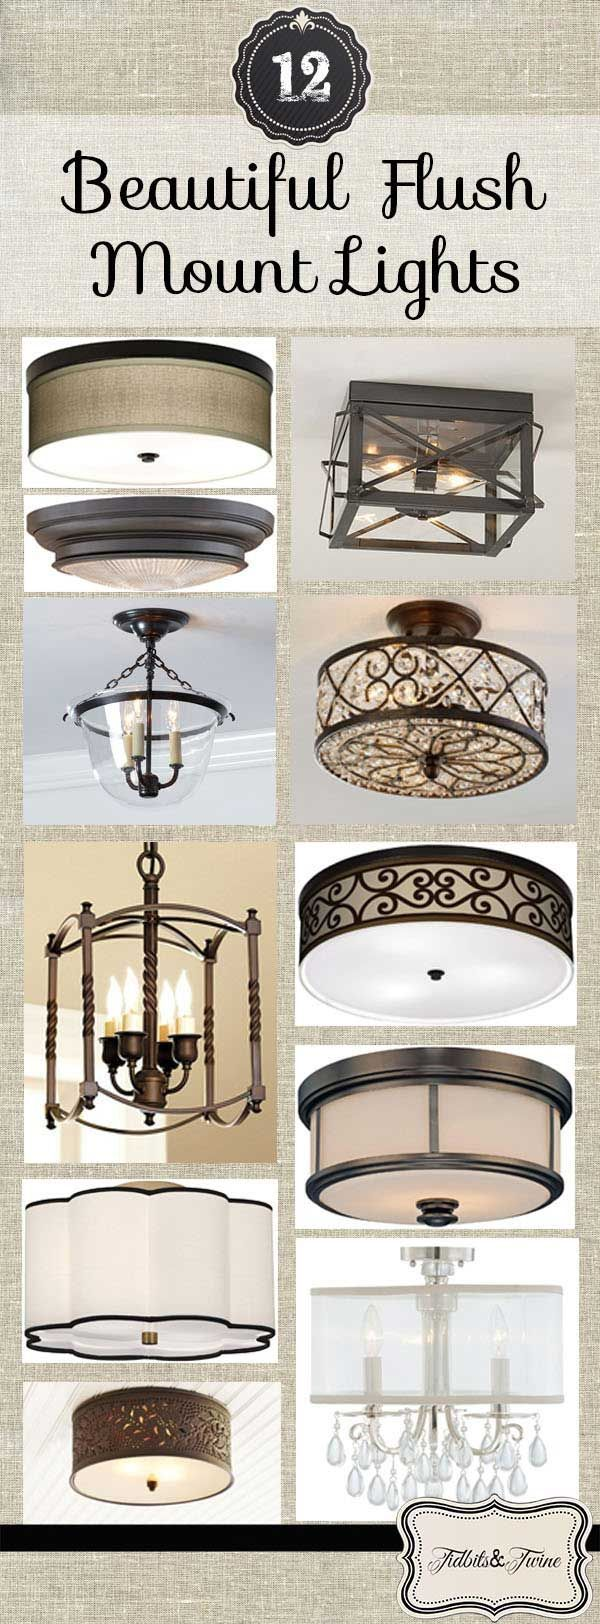 35 best lighting images on pinterest chandeliers ceiling 12 beautiful flush mount ceiling lights arubaitofo Choice Image